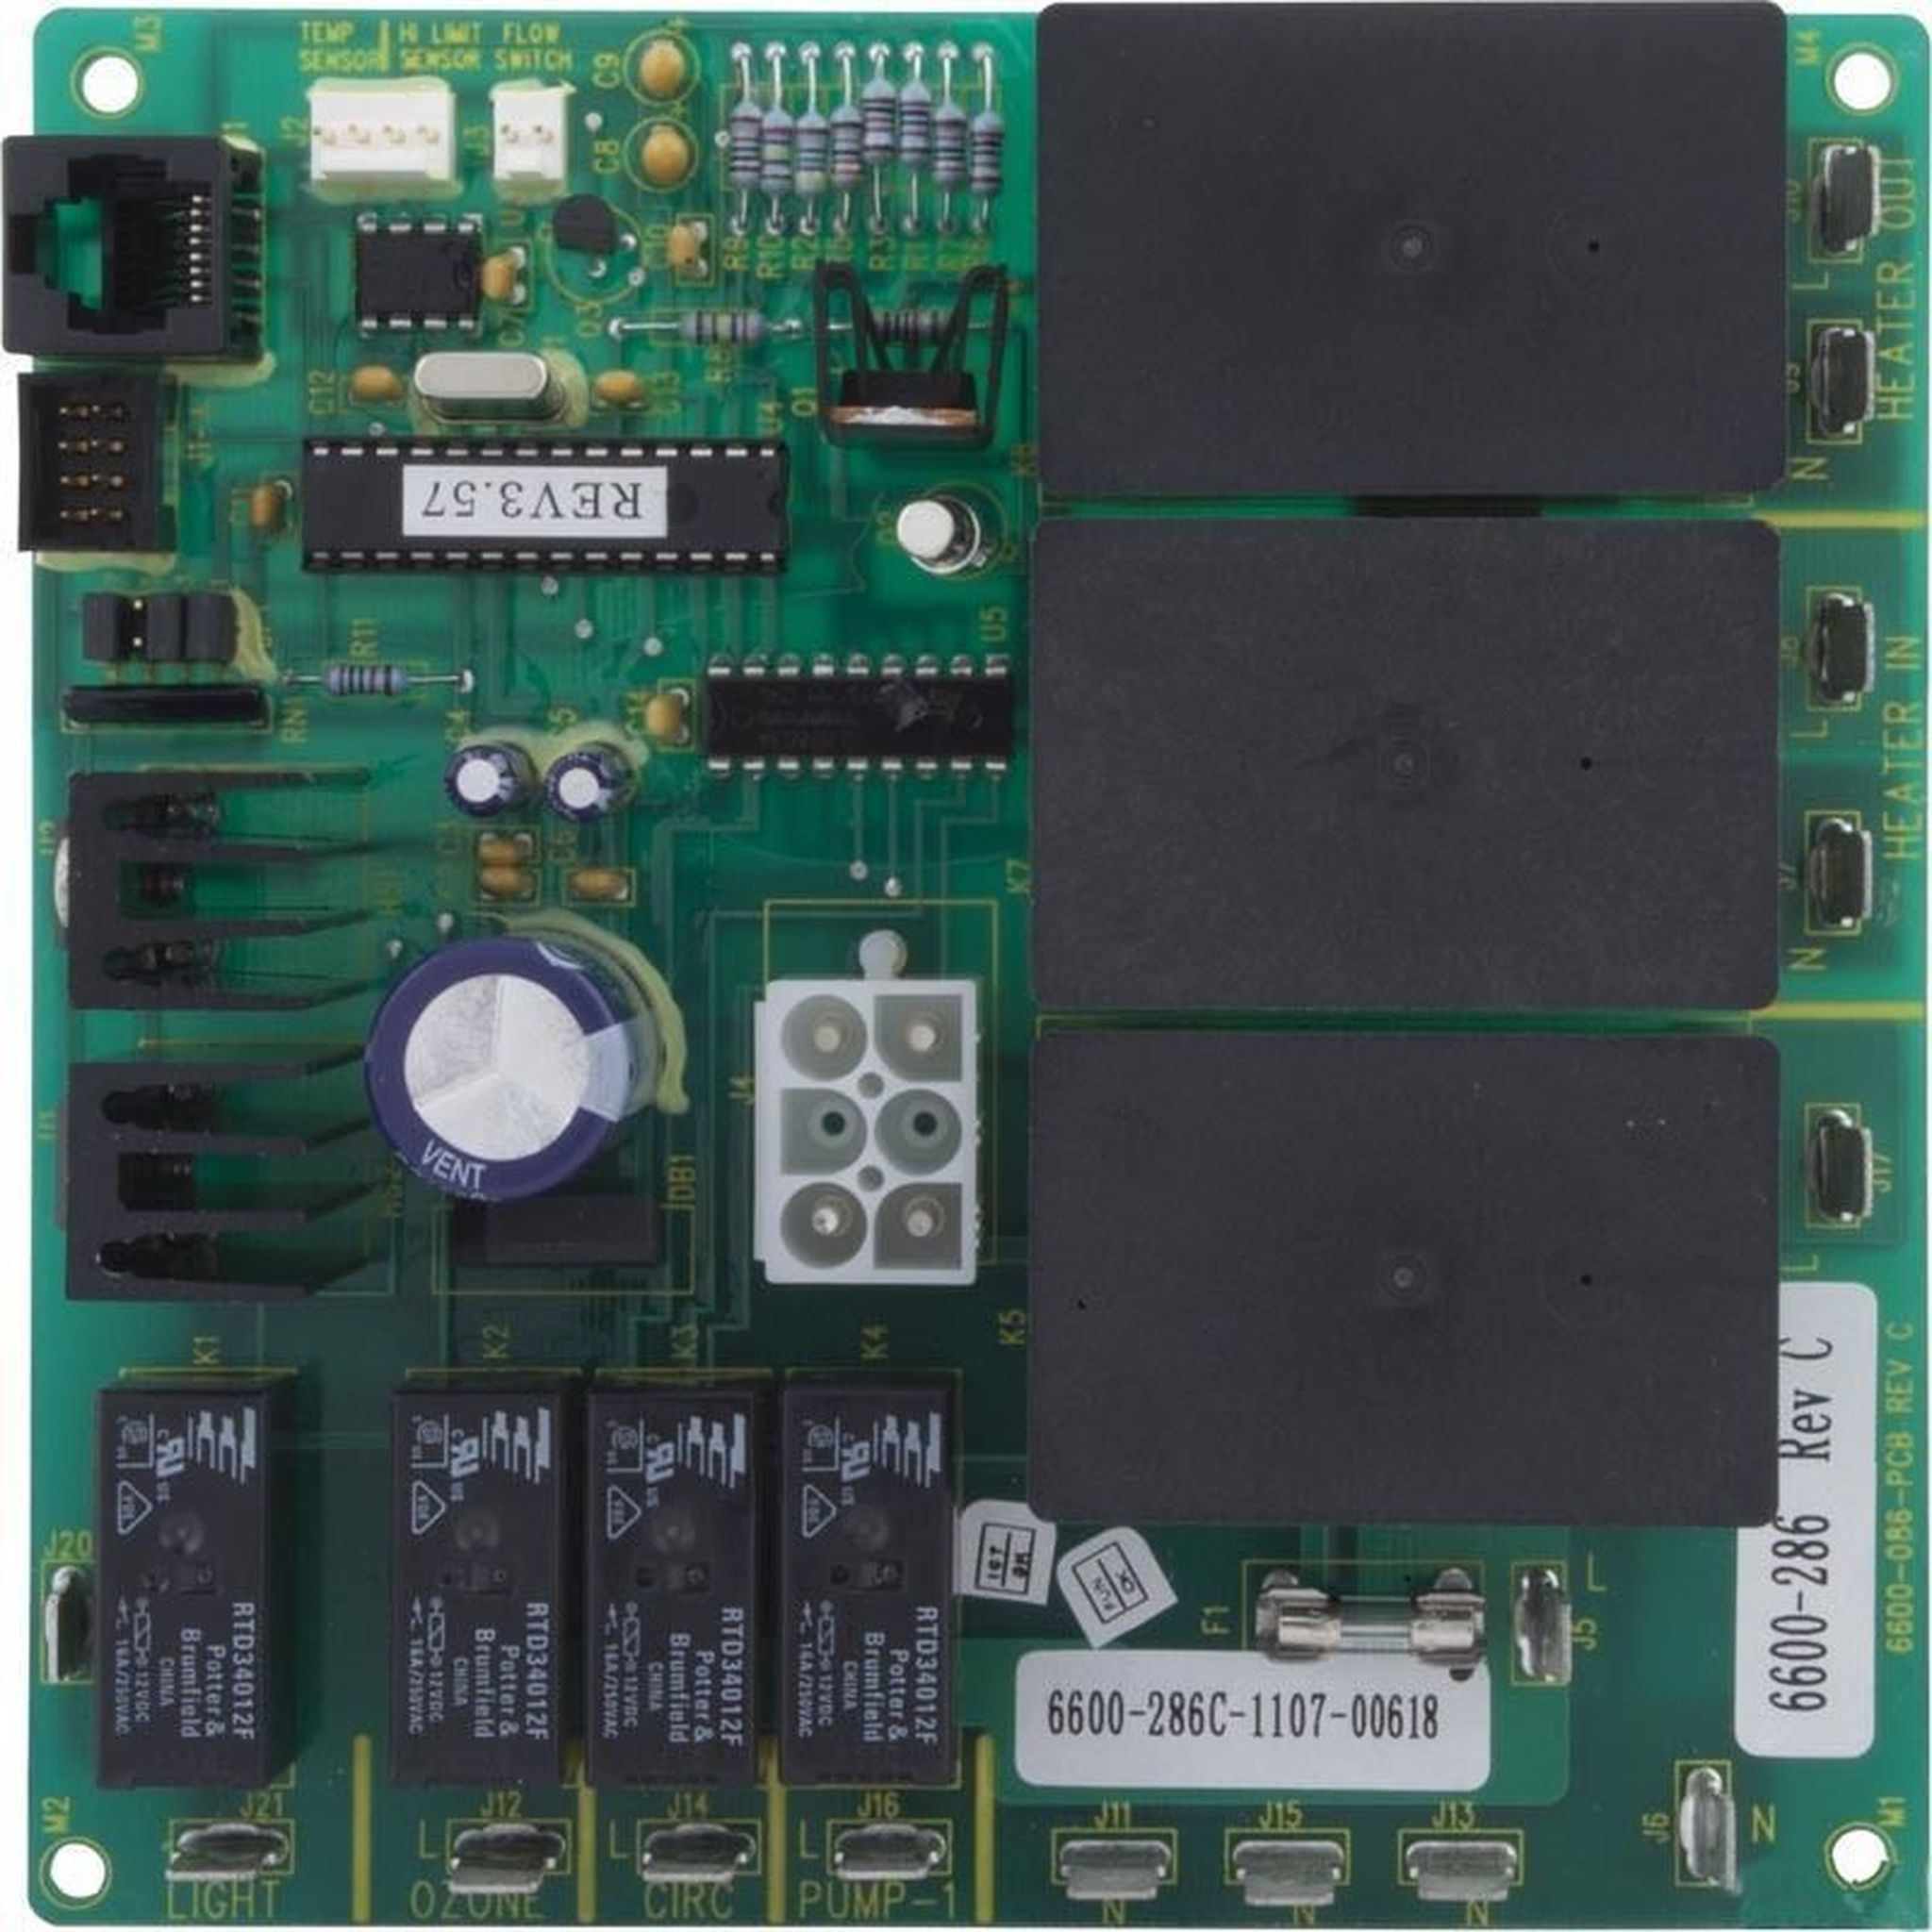 Printed Circuit Boards - PCBs